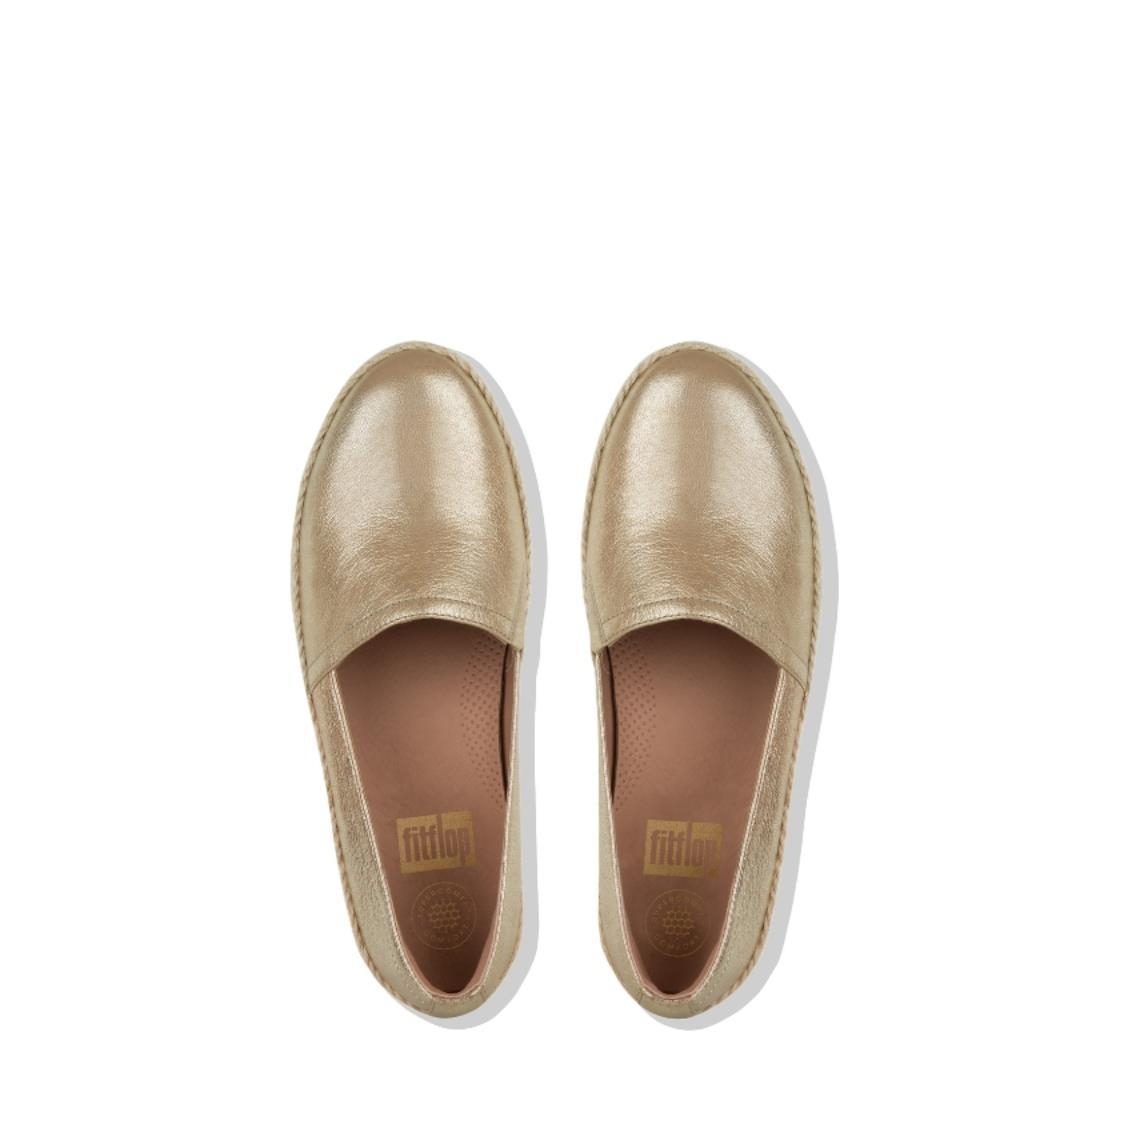 Casa Metallic Leather Loafers Gold